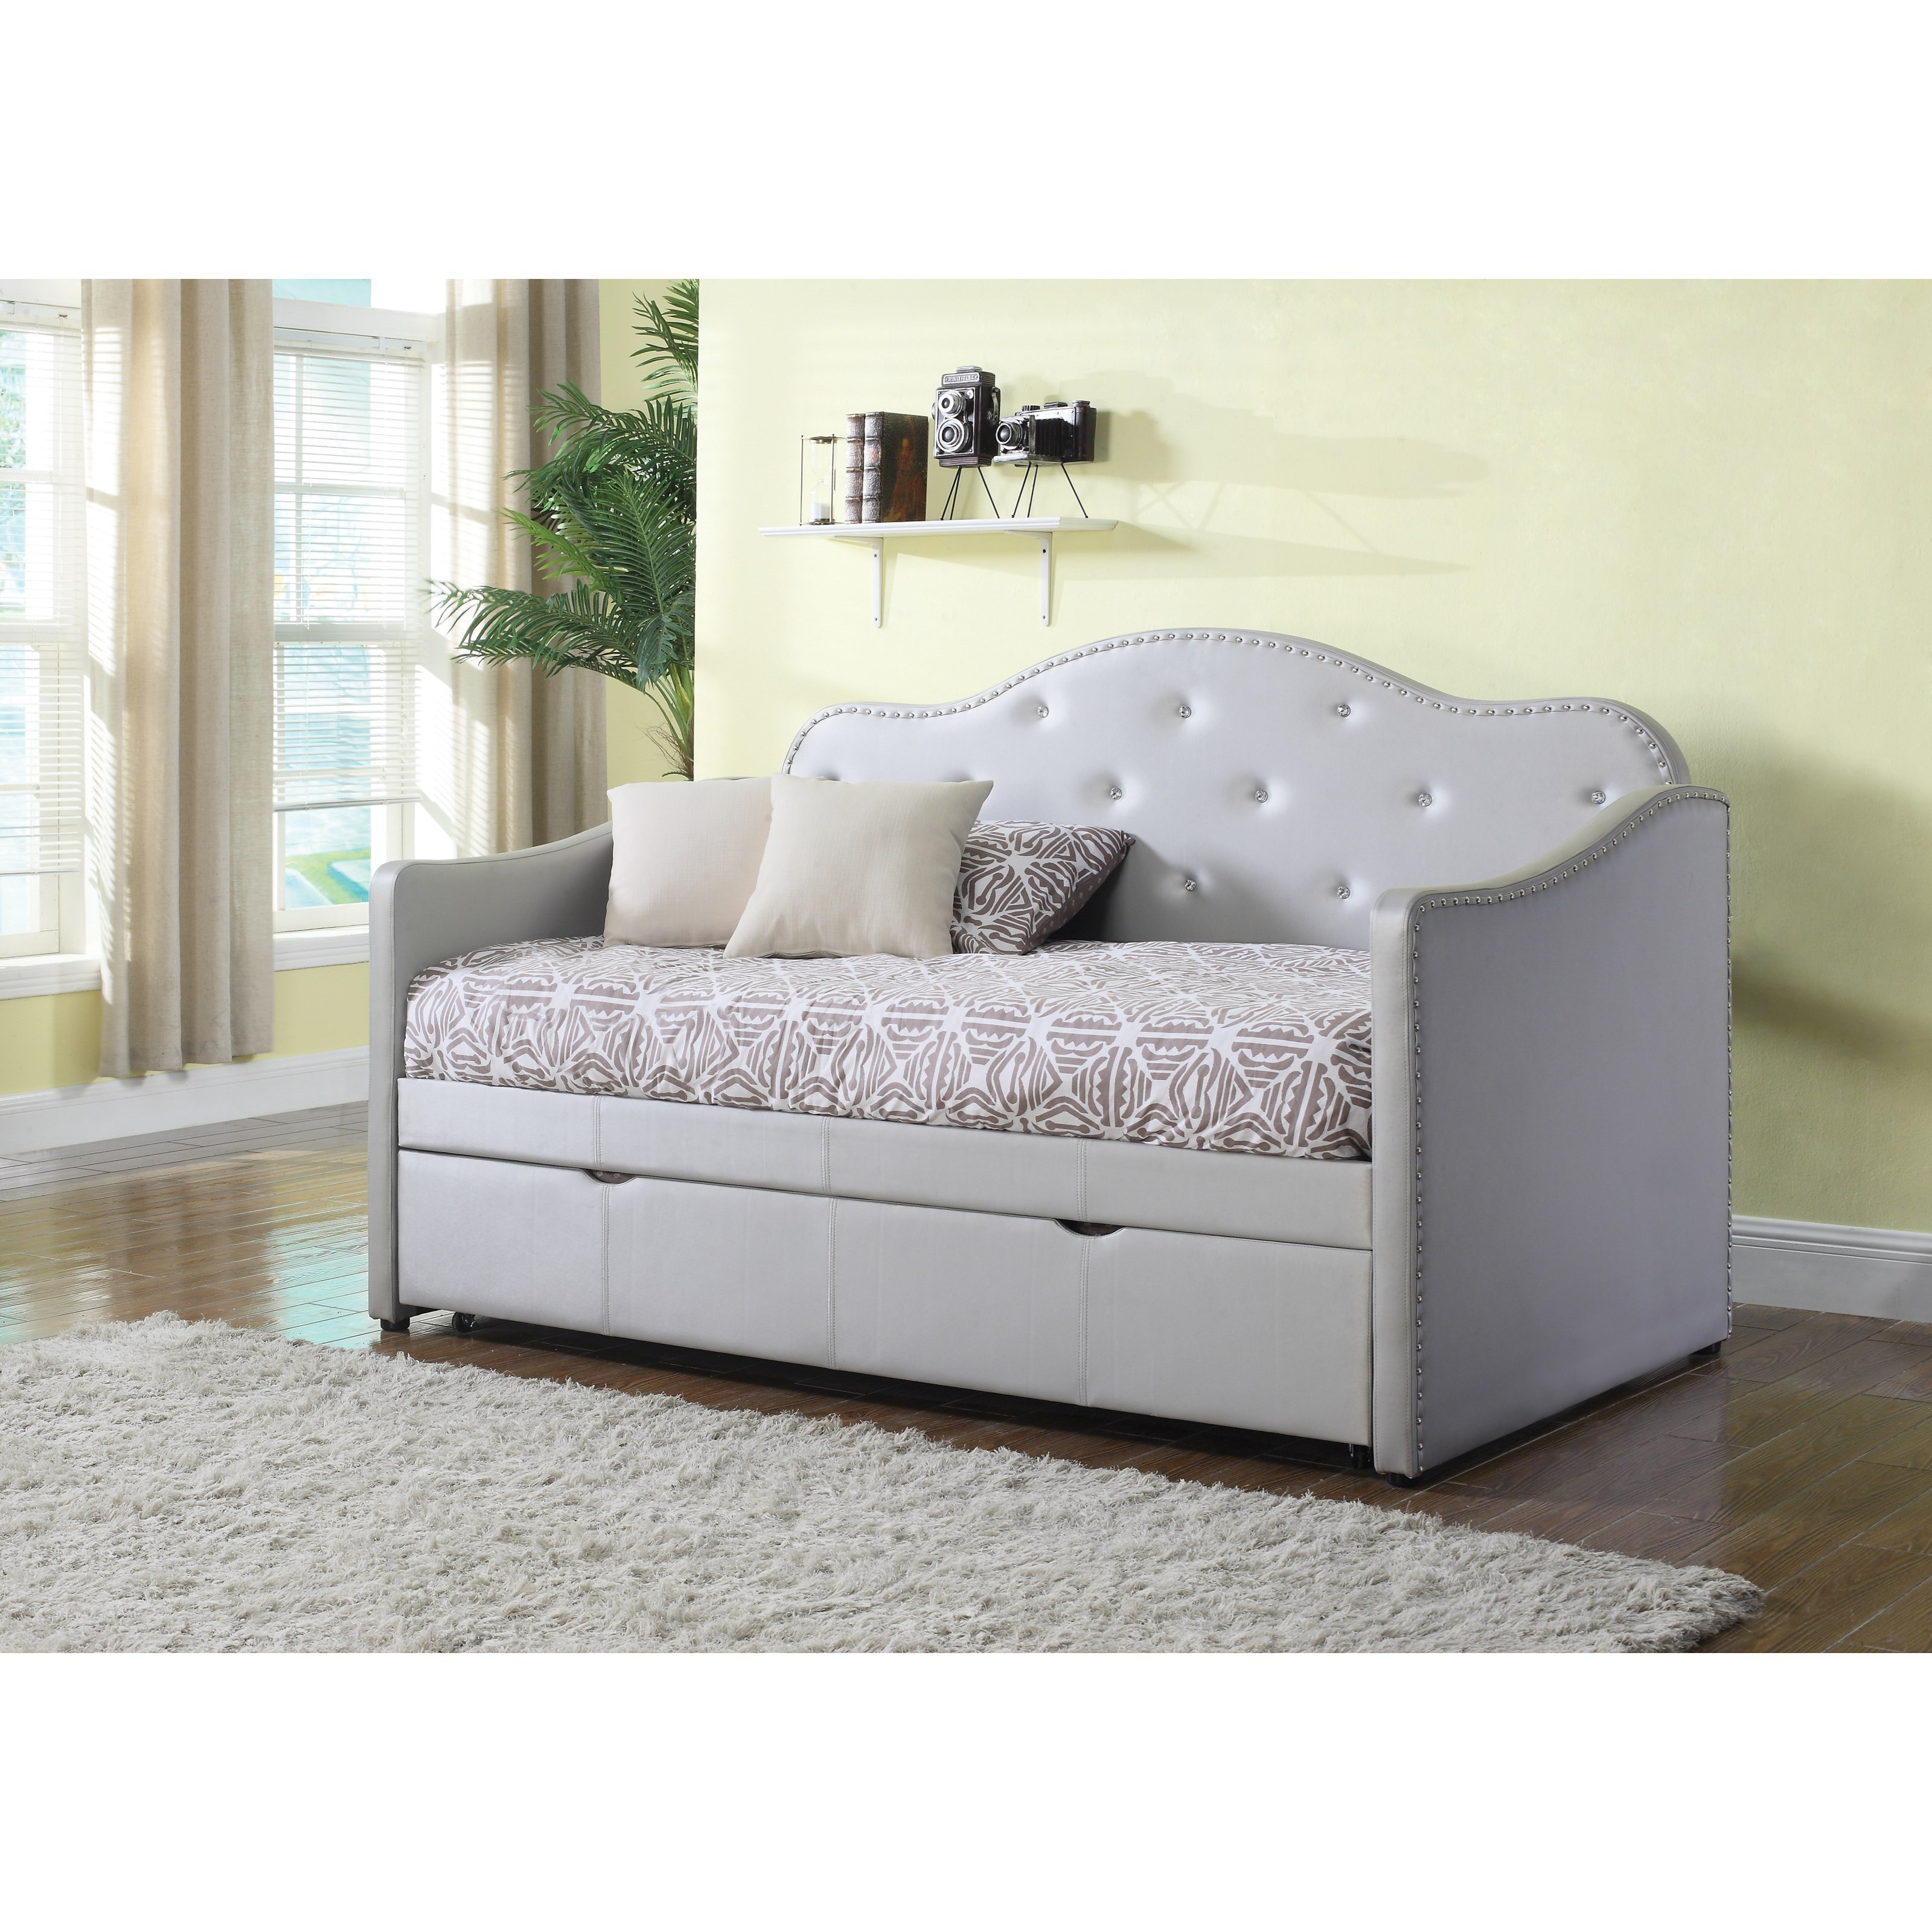 coaster daybeds by coaster upholstered daybed with trundle knight furniture mattress daybeds. Black Bedroom Furniture Sets. Home Design Ideas